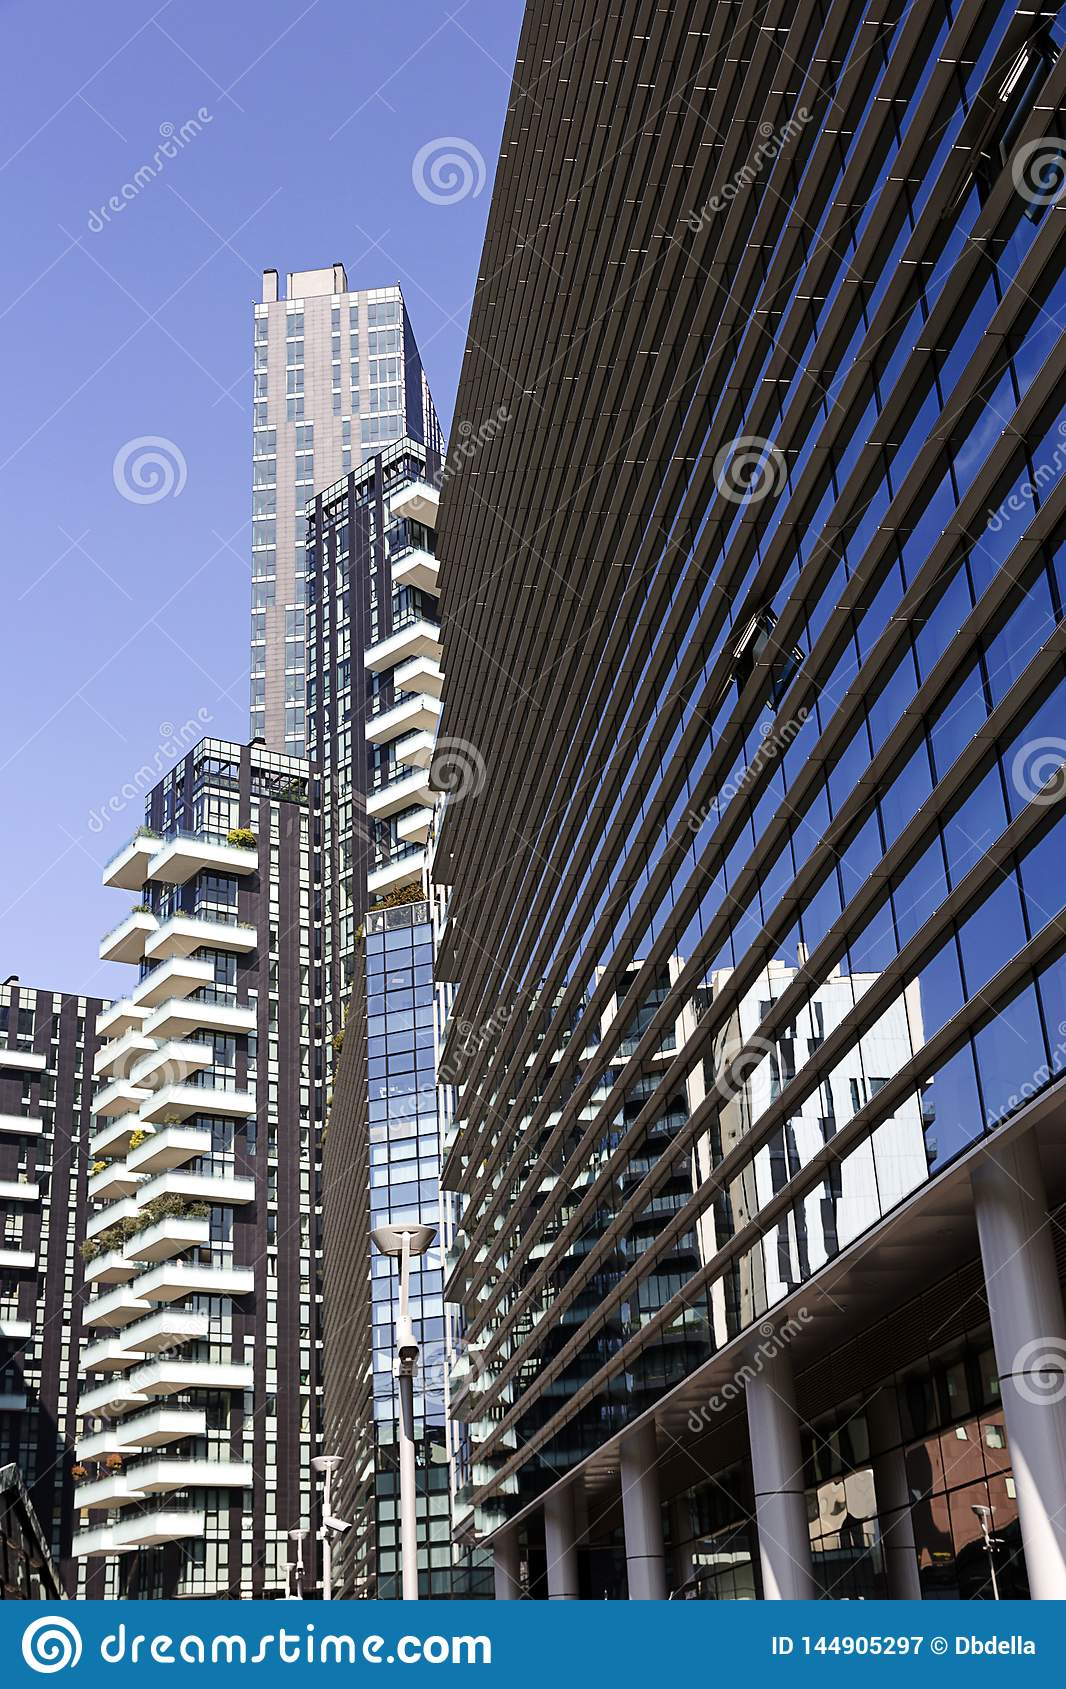 Milan - Residential building in Porta Nuova district one of the main business districts of Milan, Lombardy Italy